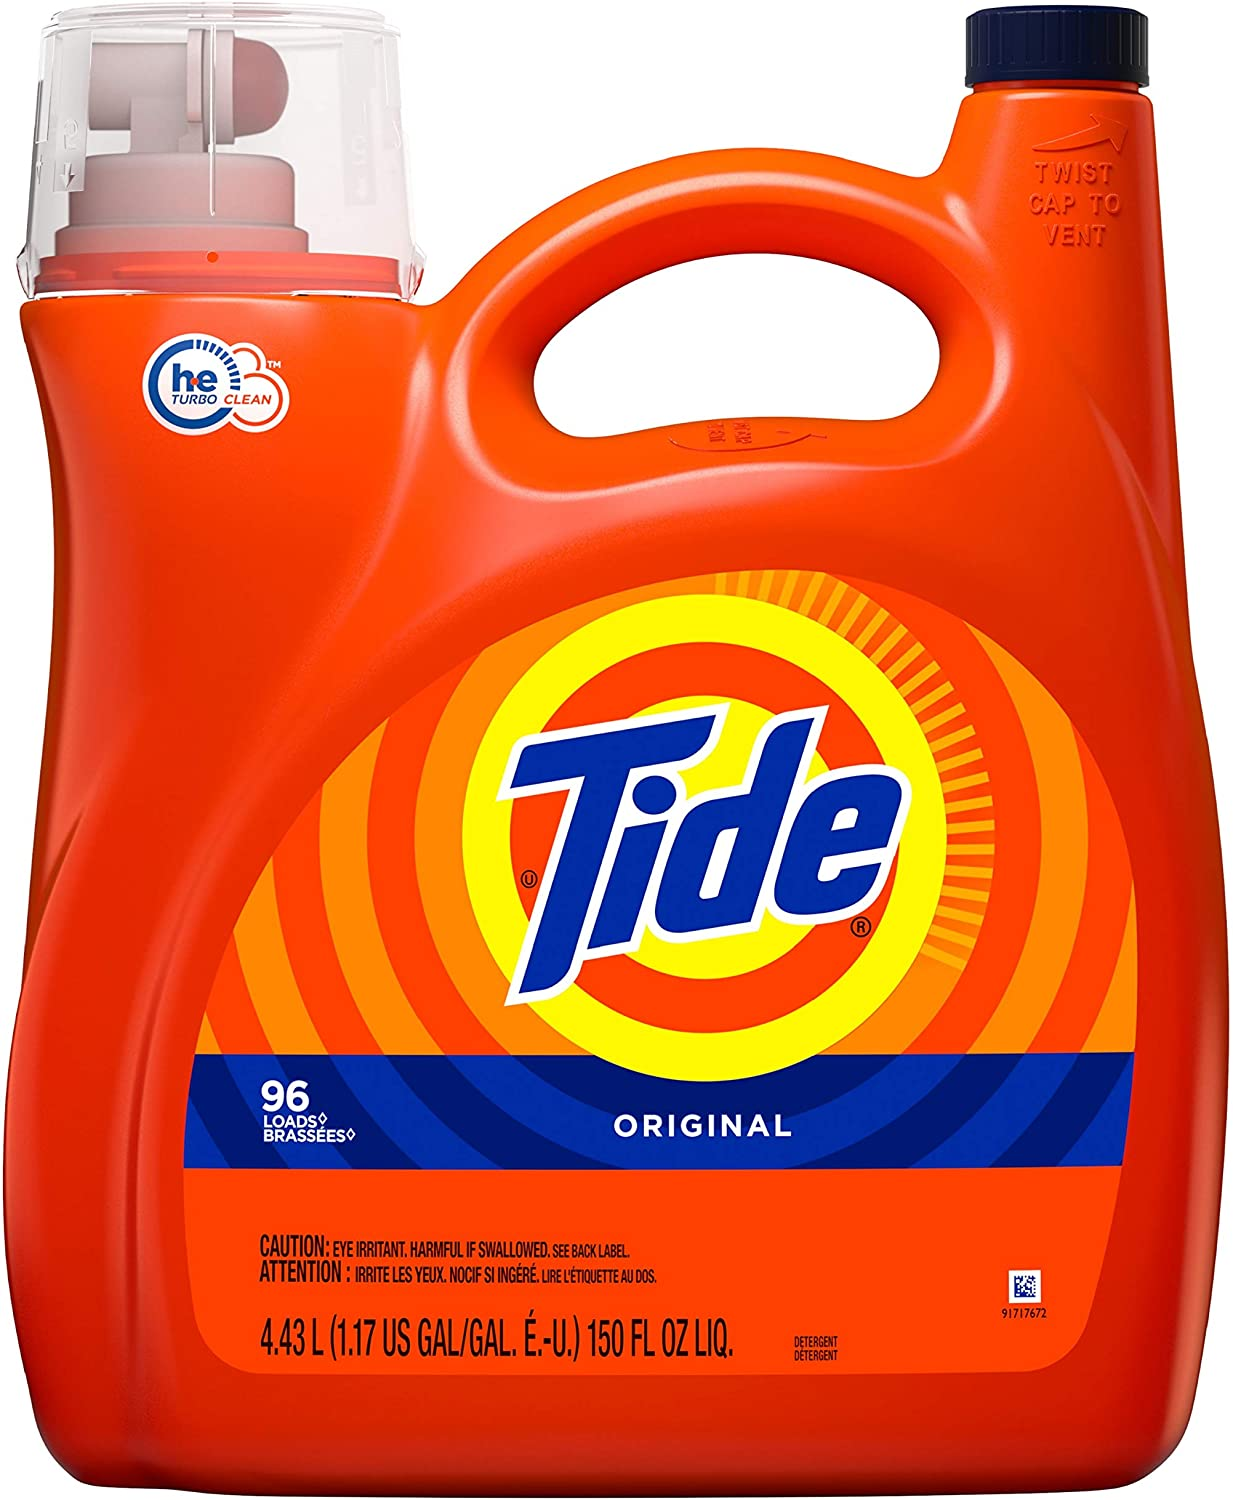 Tide Ultra Concentrated Liquid Laundry Detergent, Original, 96 Loads 150 fl oz